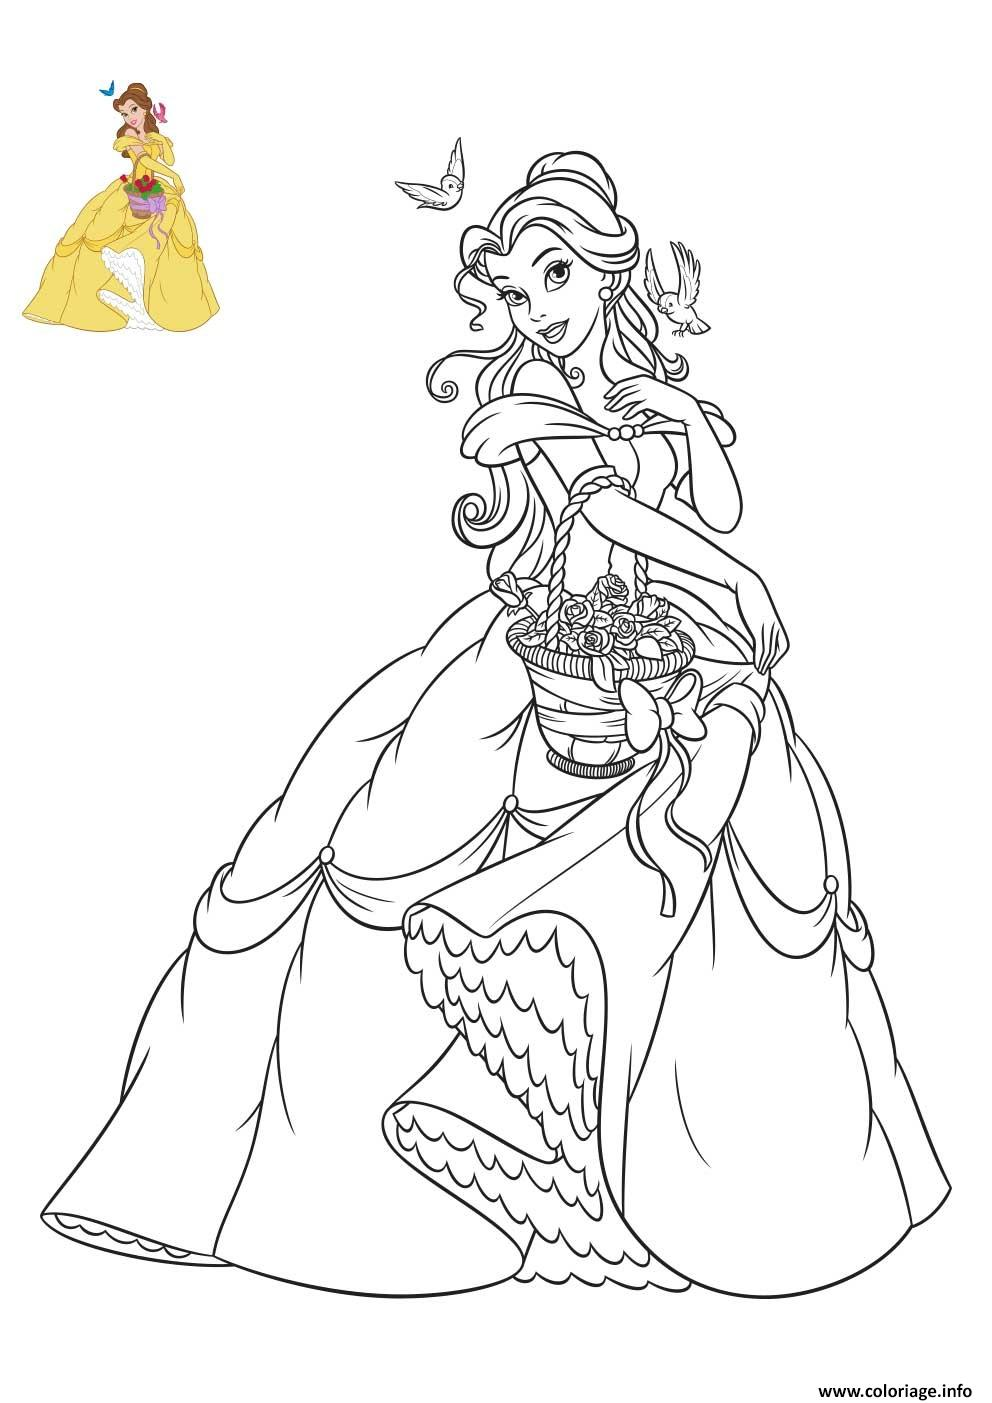 Coloriage Princesse Disney Belle Dessin